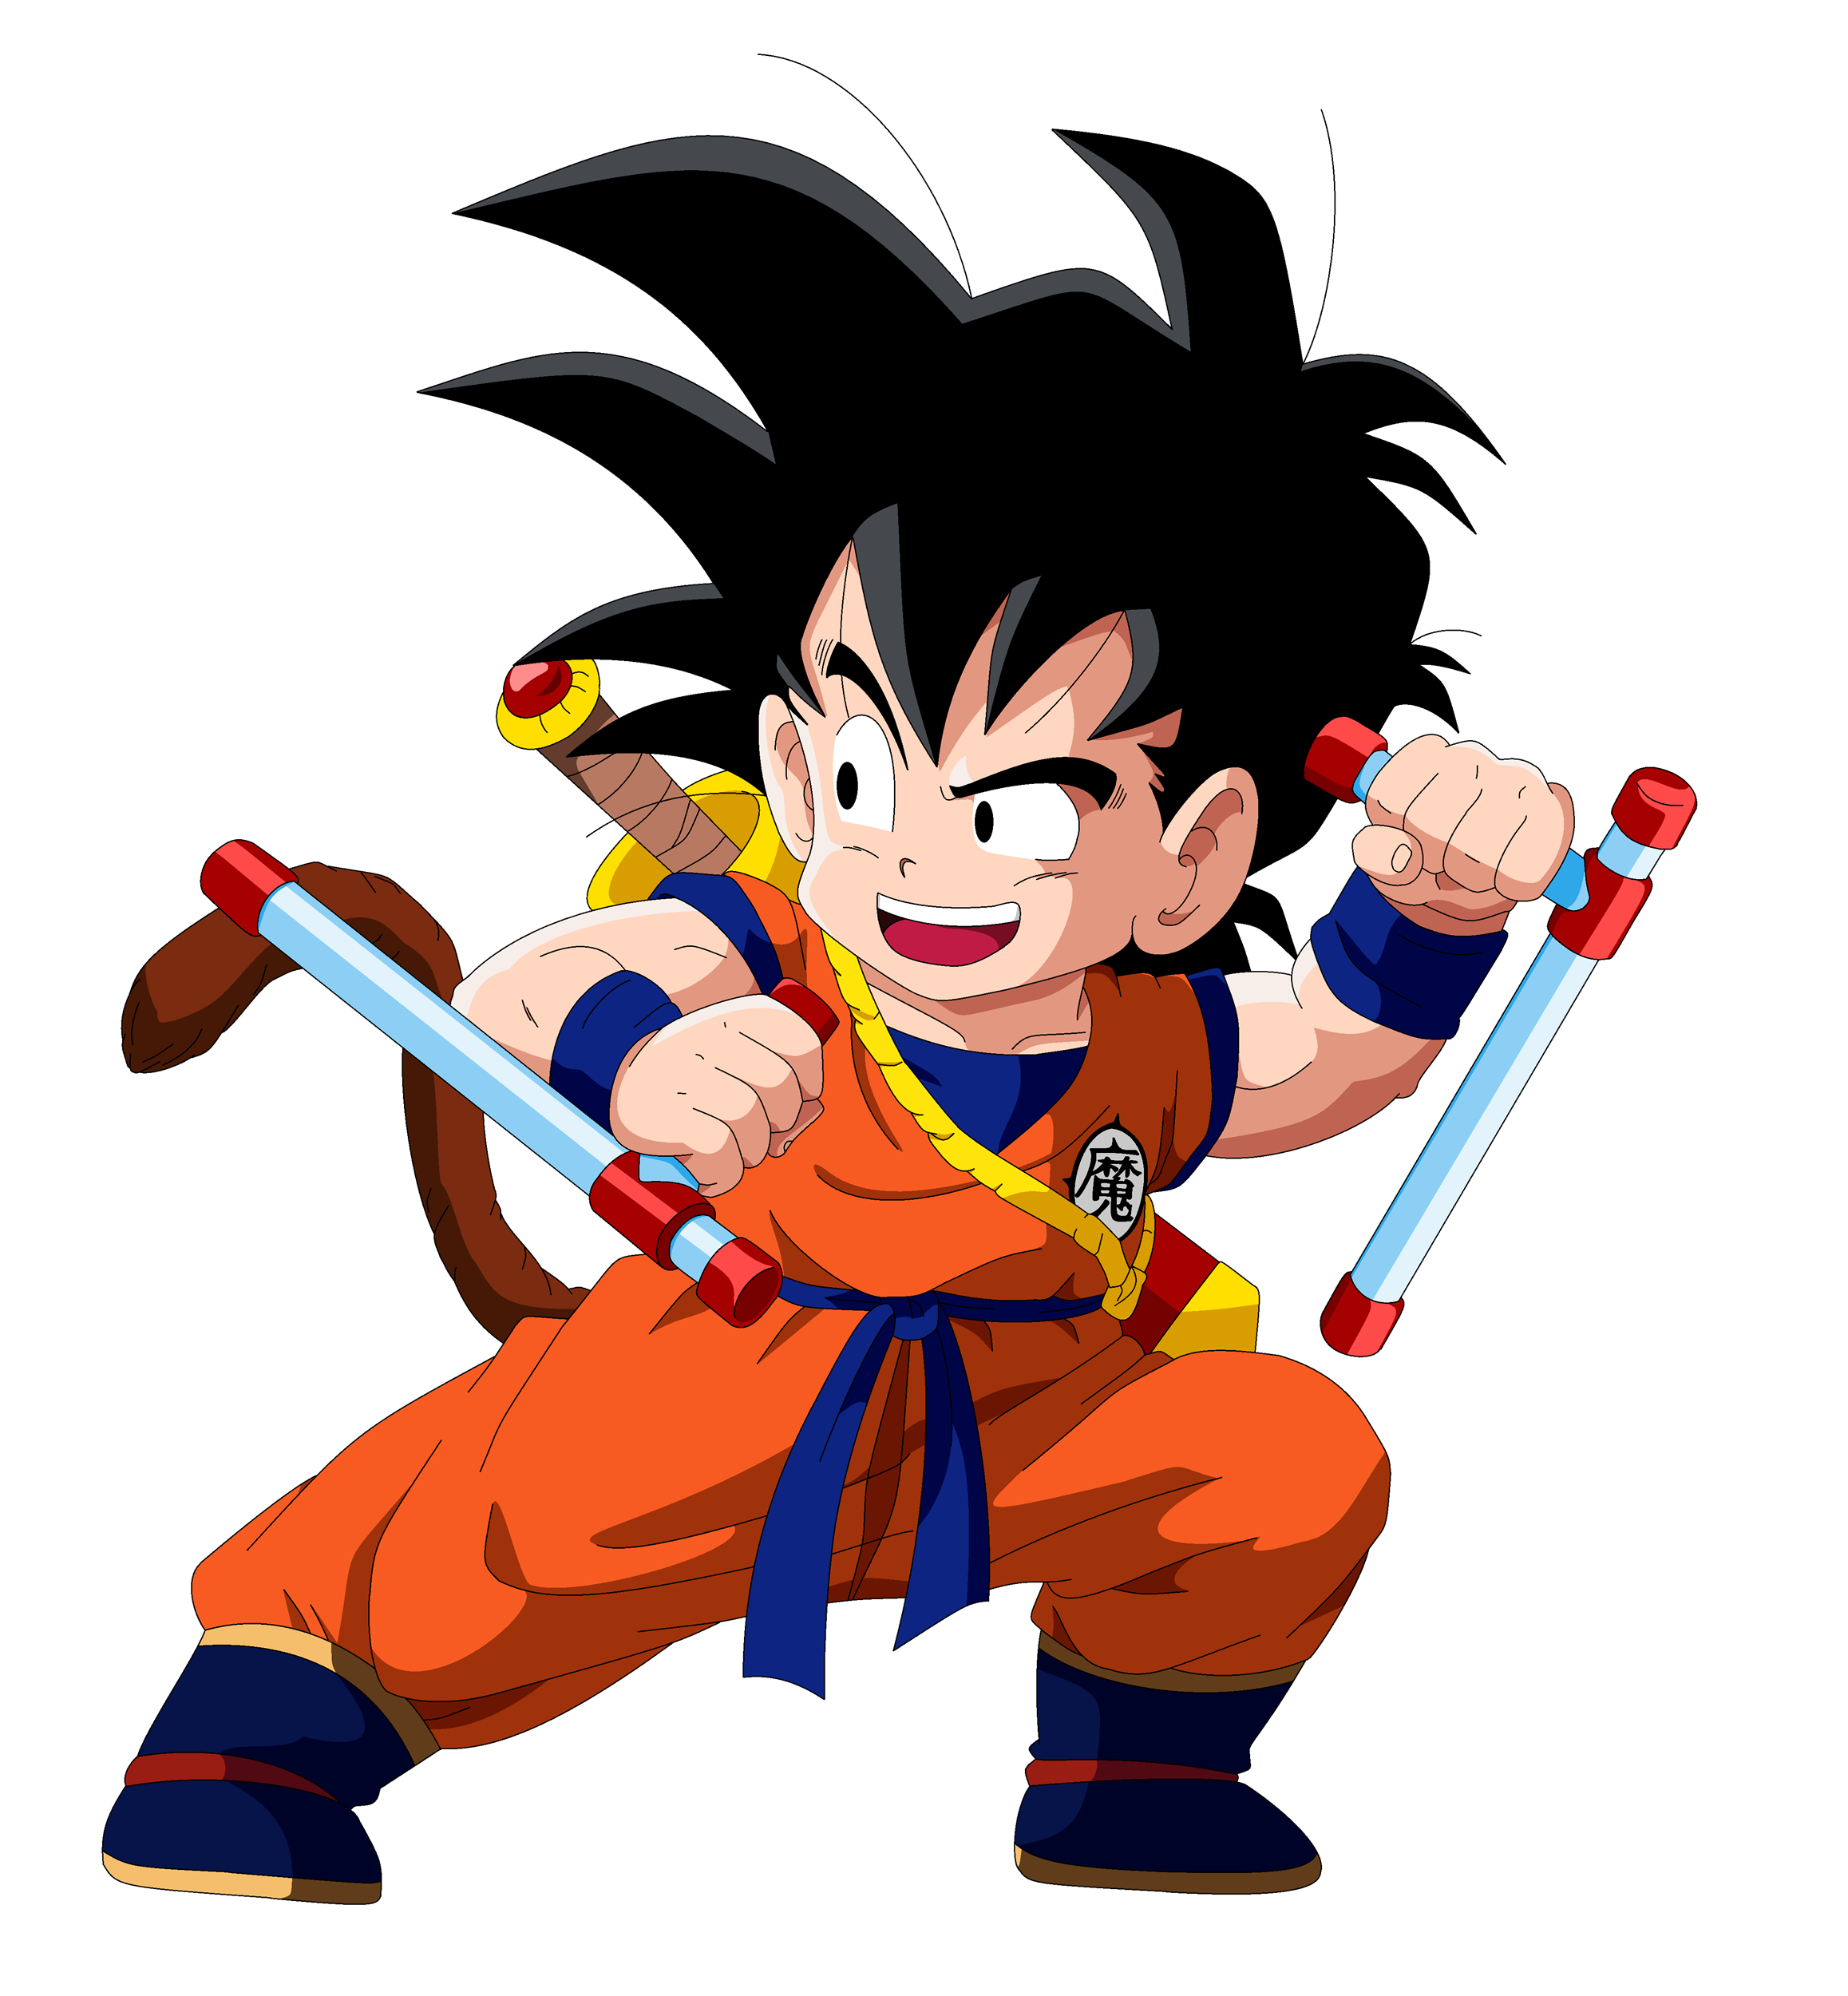 Kid gohan by el maky z on deviantart - Dragon ball z gohan images ...